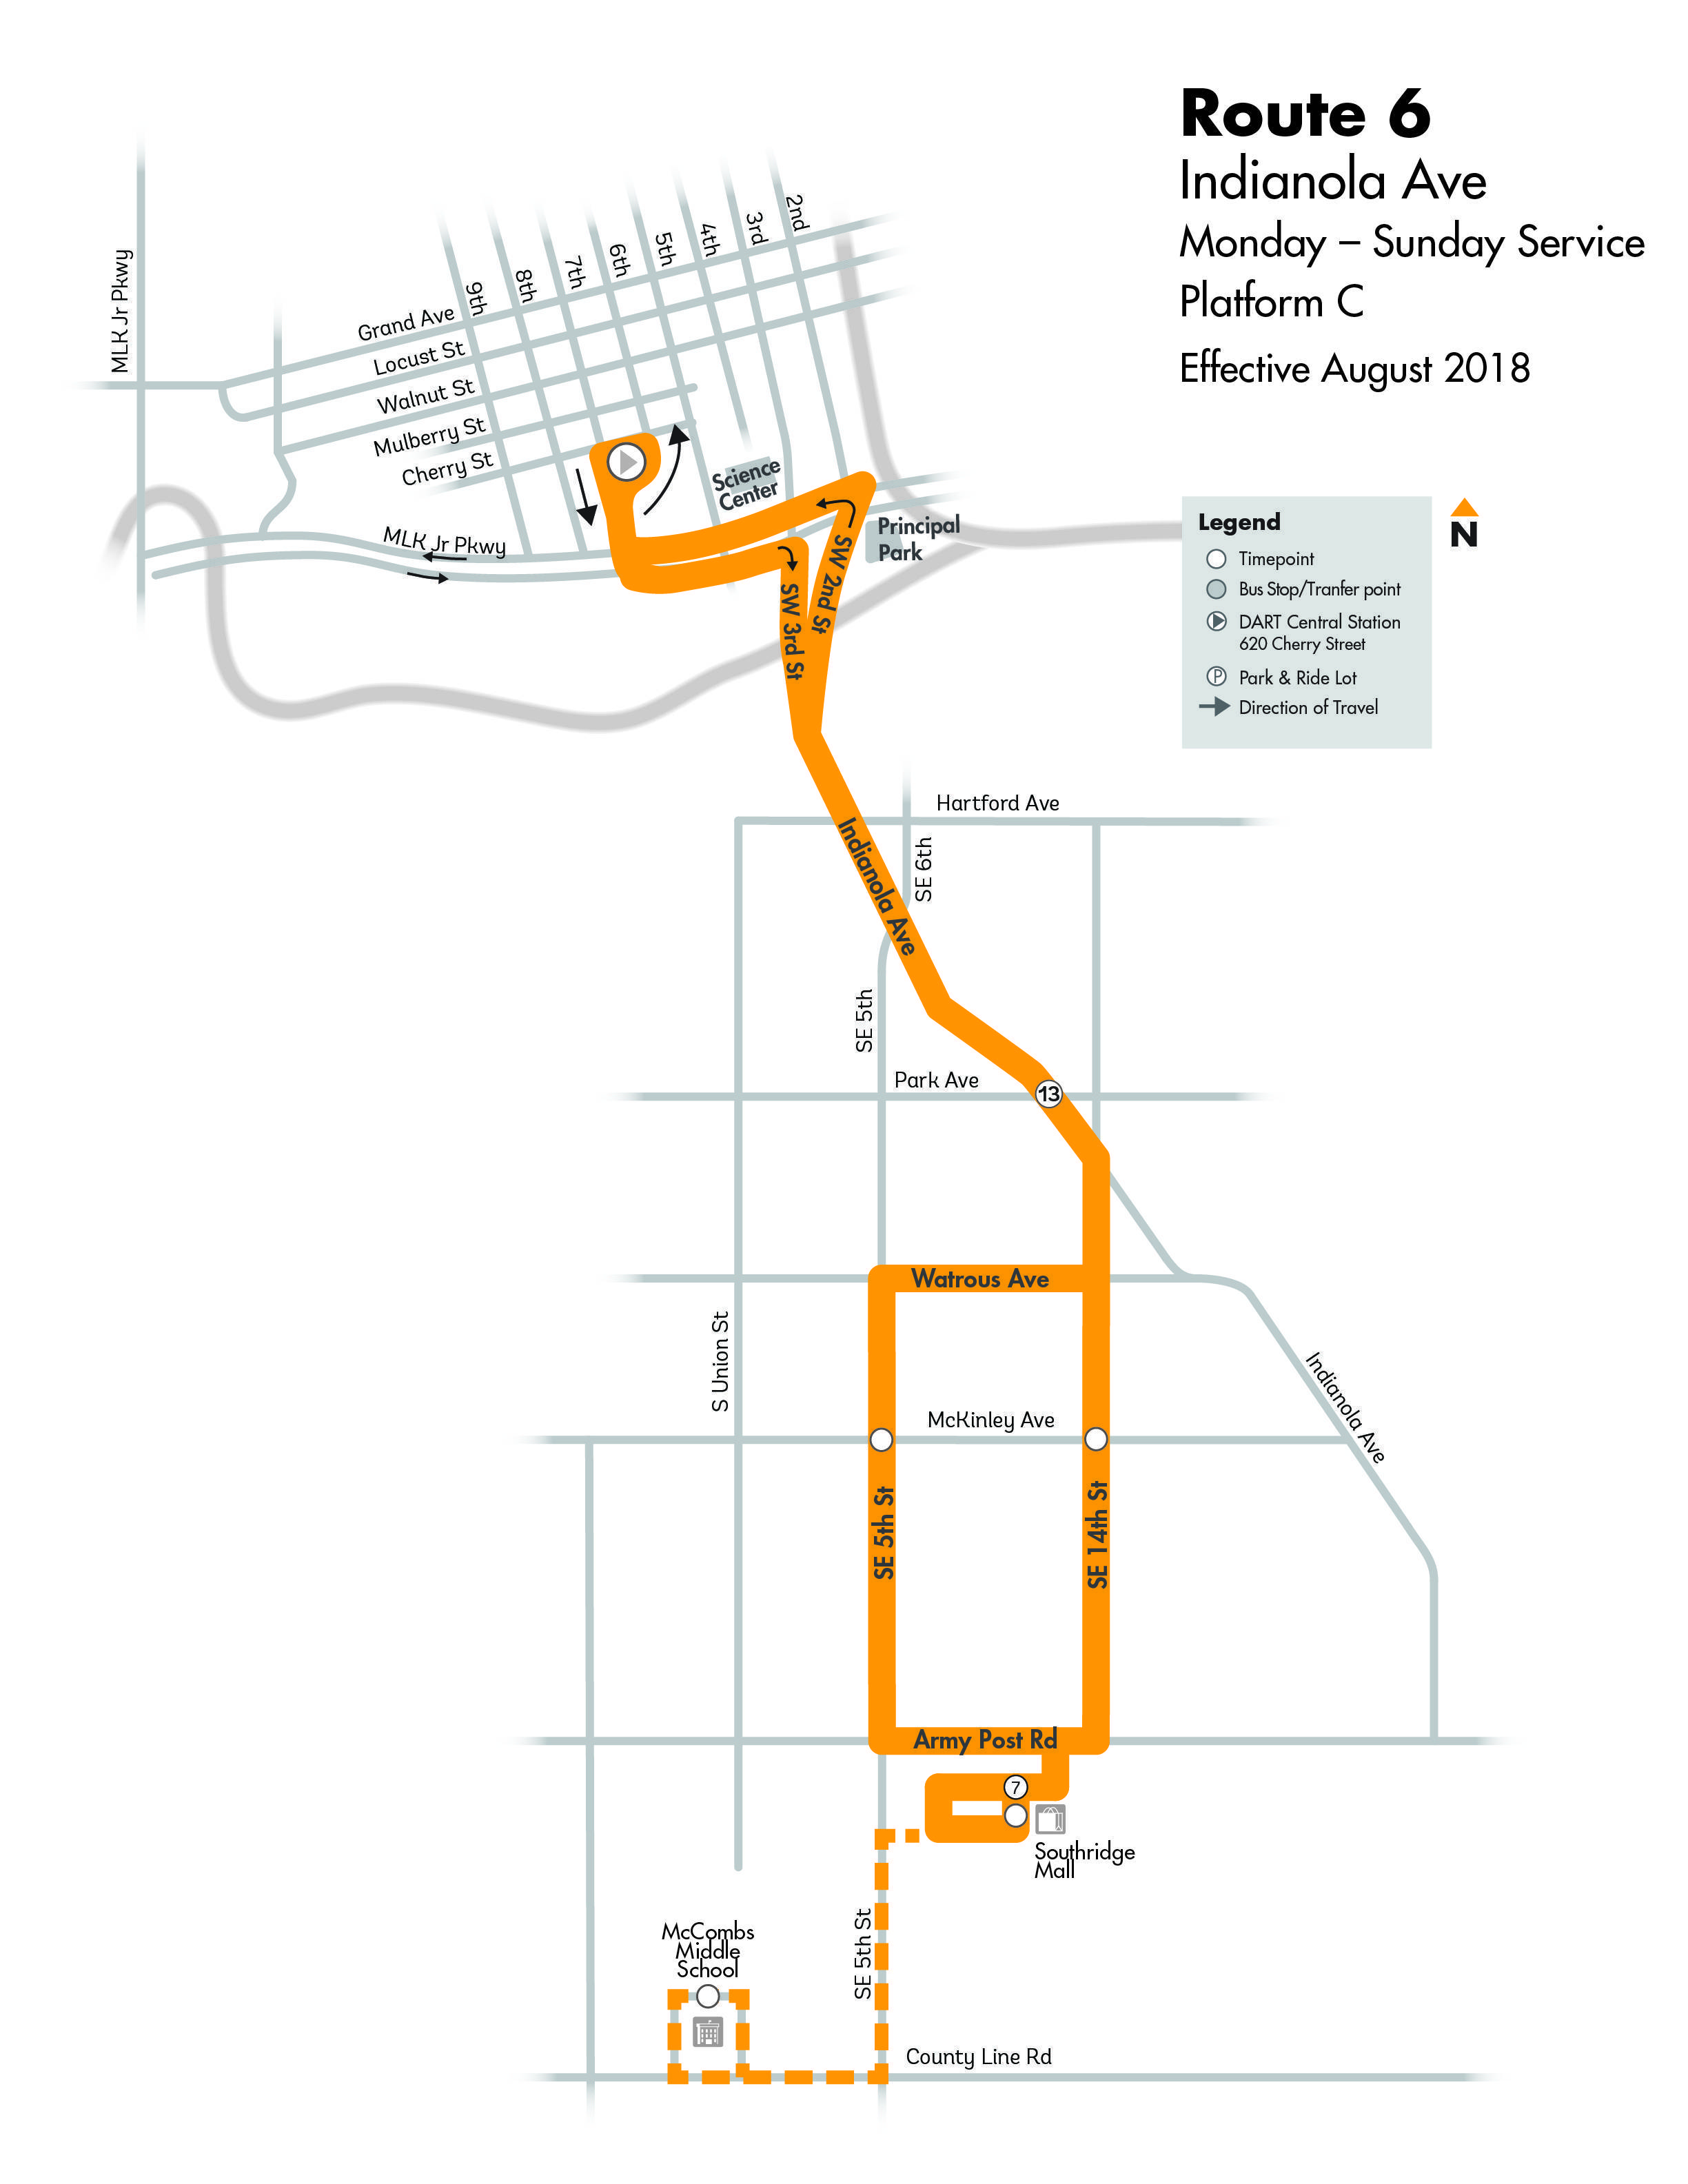 DART Local Route 6 - Indianola Map